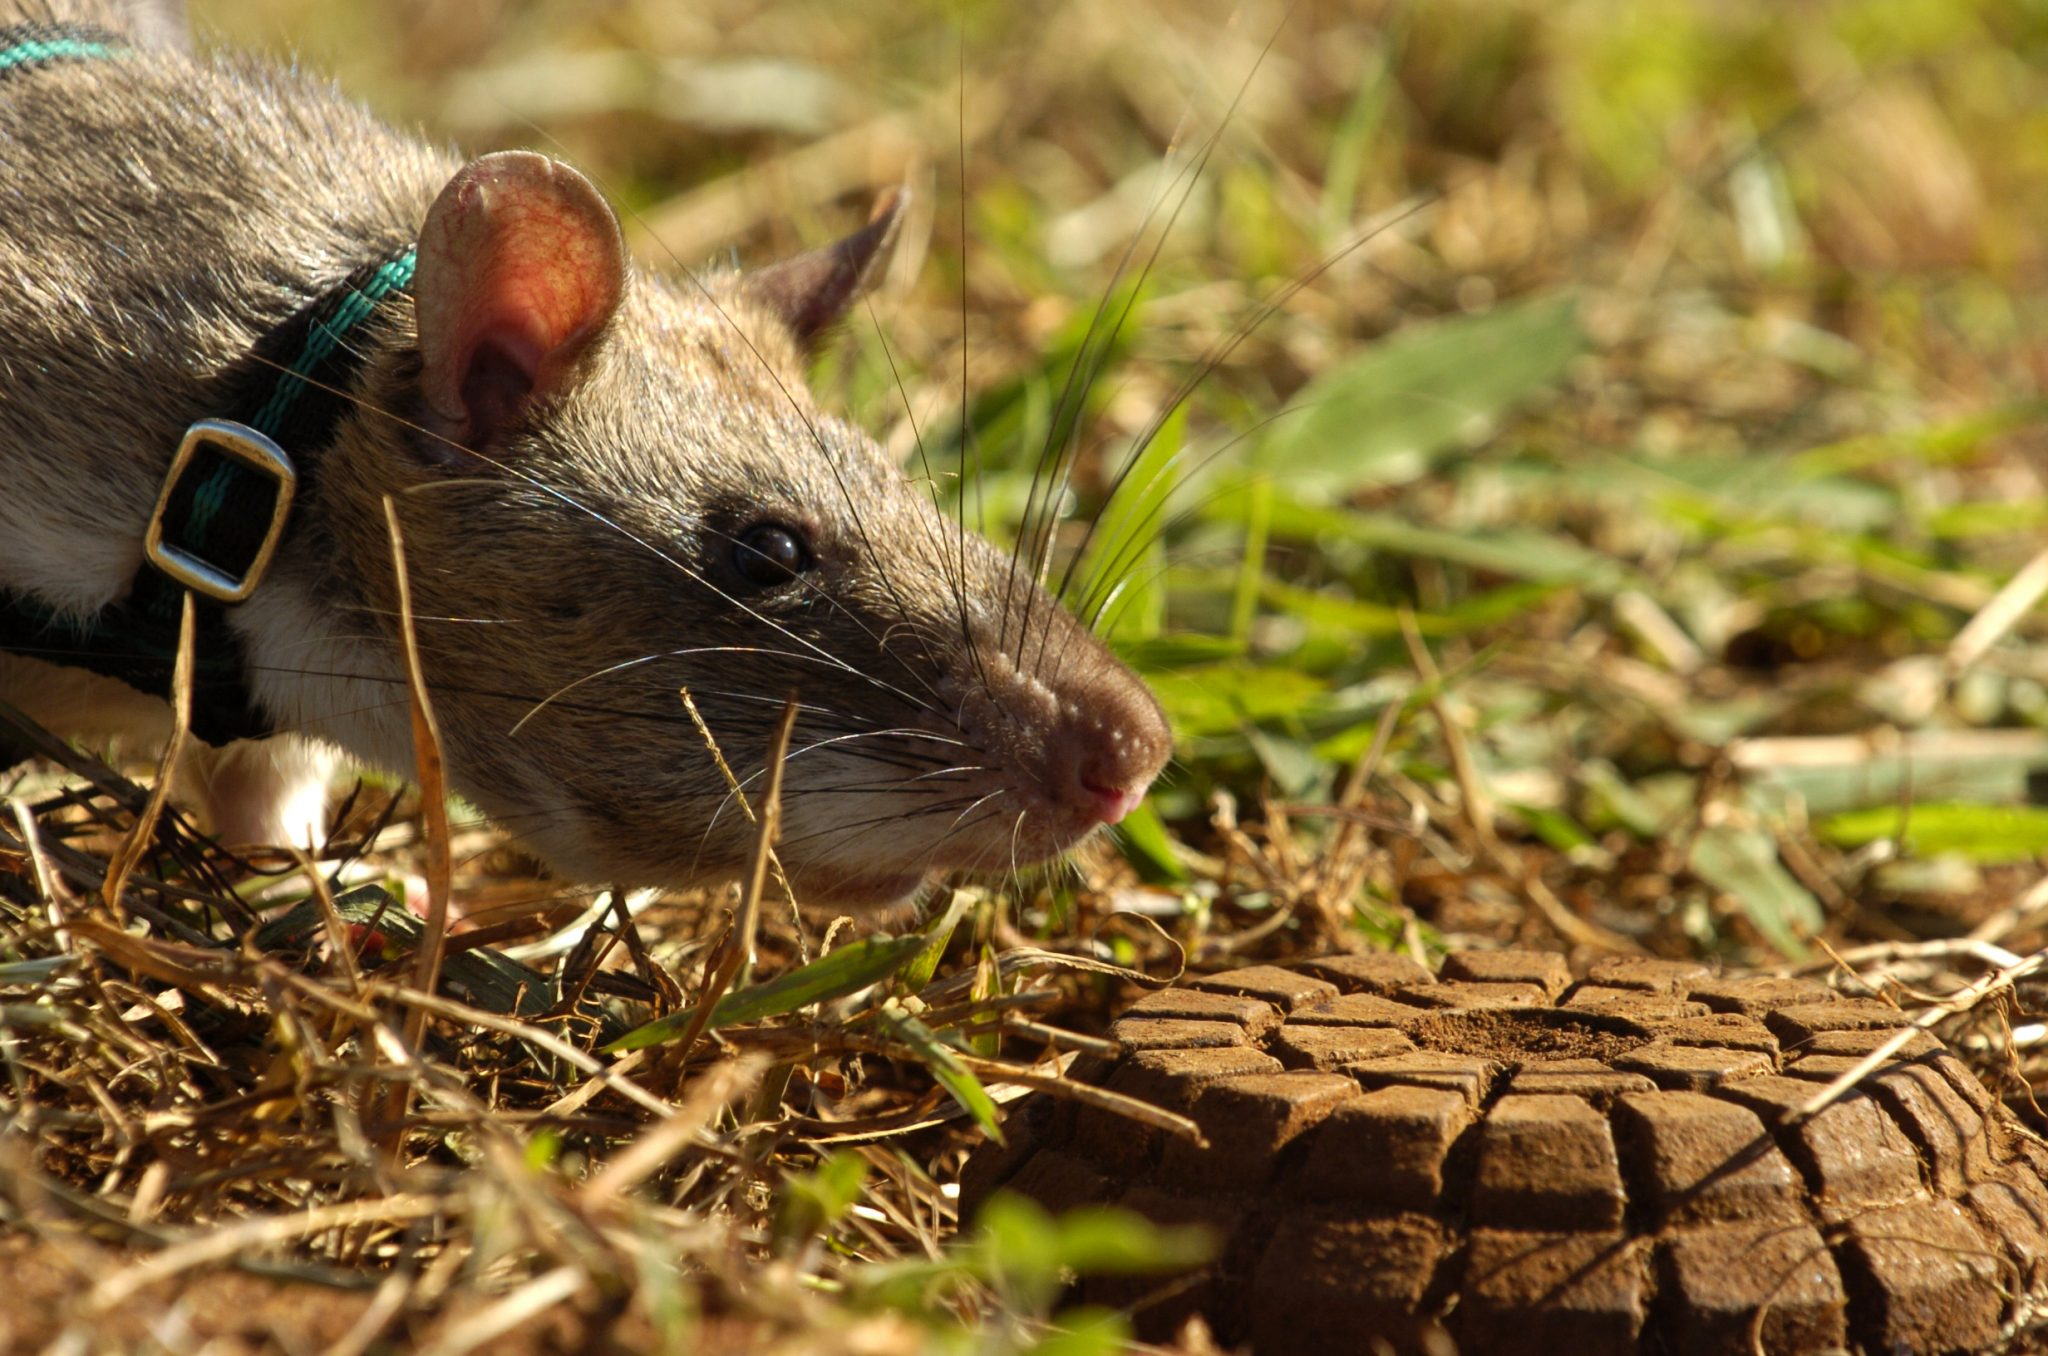 Hero Rats! Did You Know They Are The Cleanest And Most Vital Rodent?